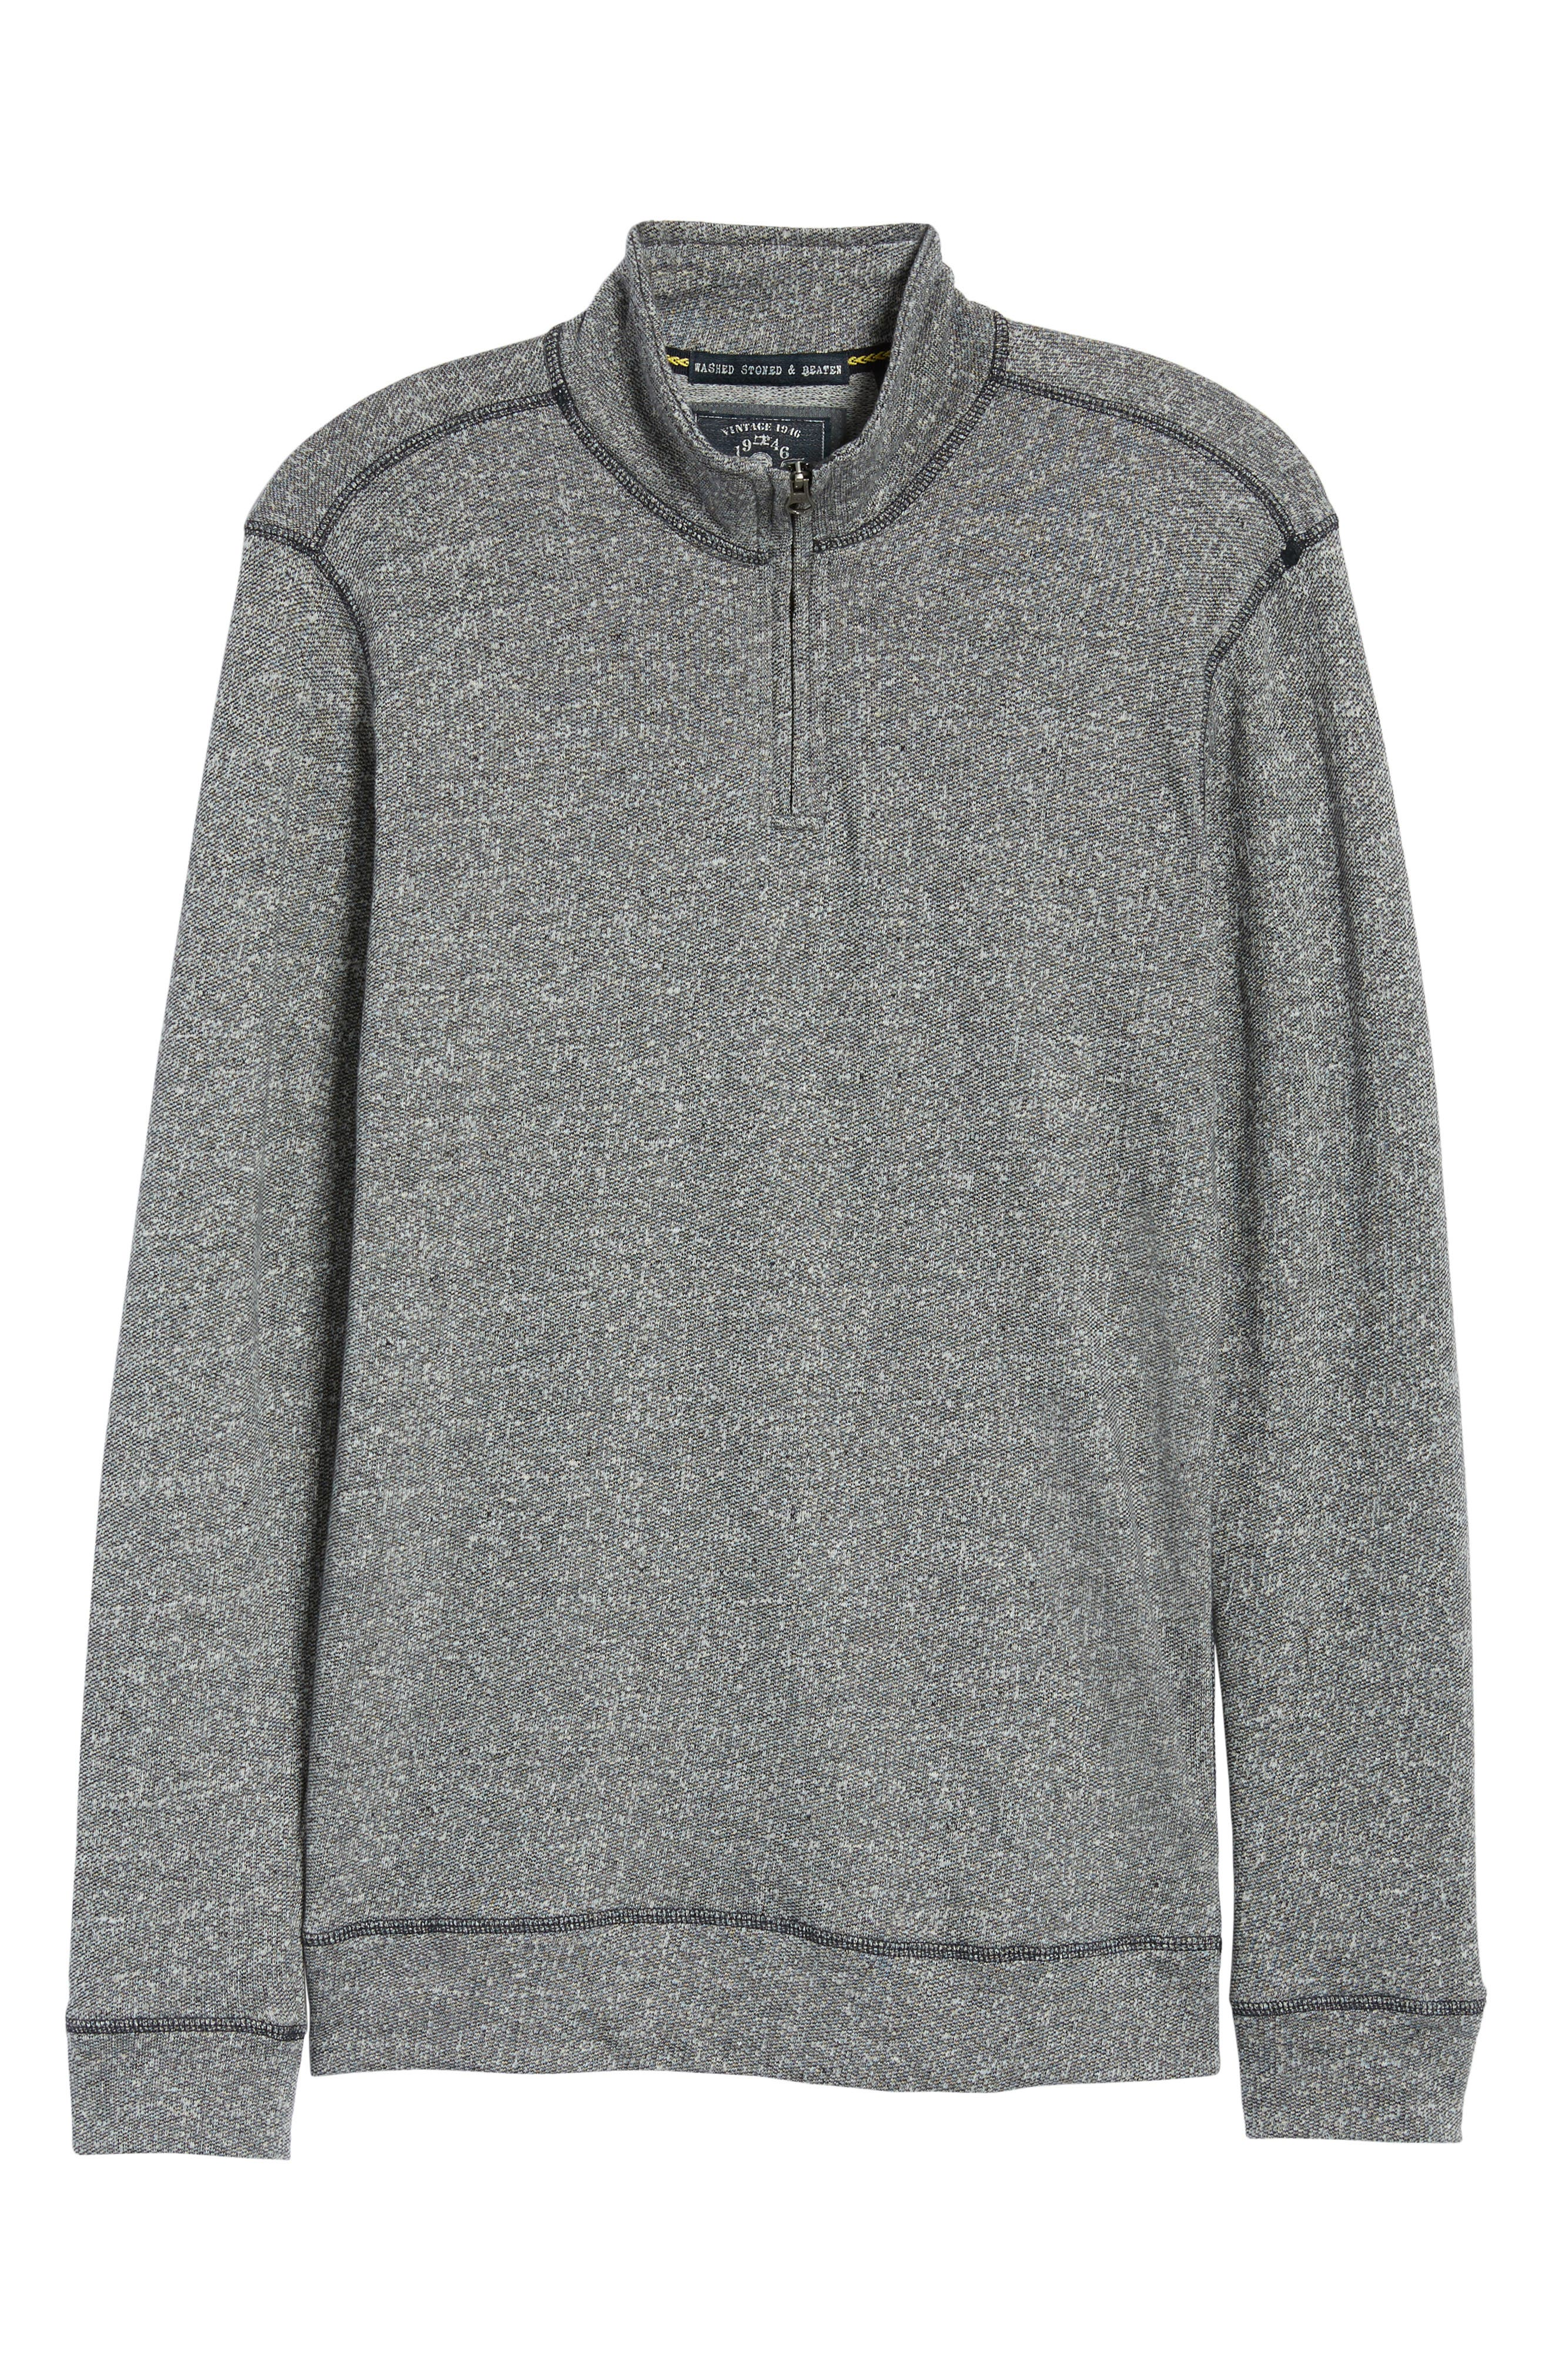 Regular Fit French Terry Pullover,                             Alternate thumbnail 6, color,                             CHARCOAL